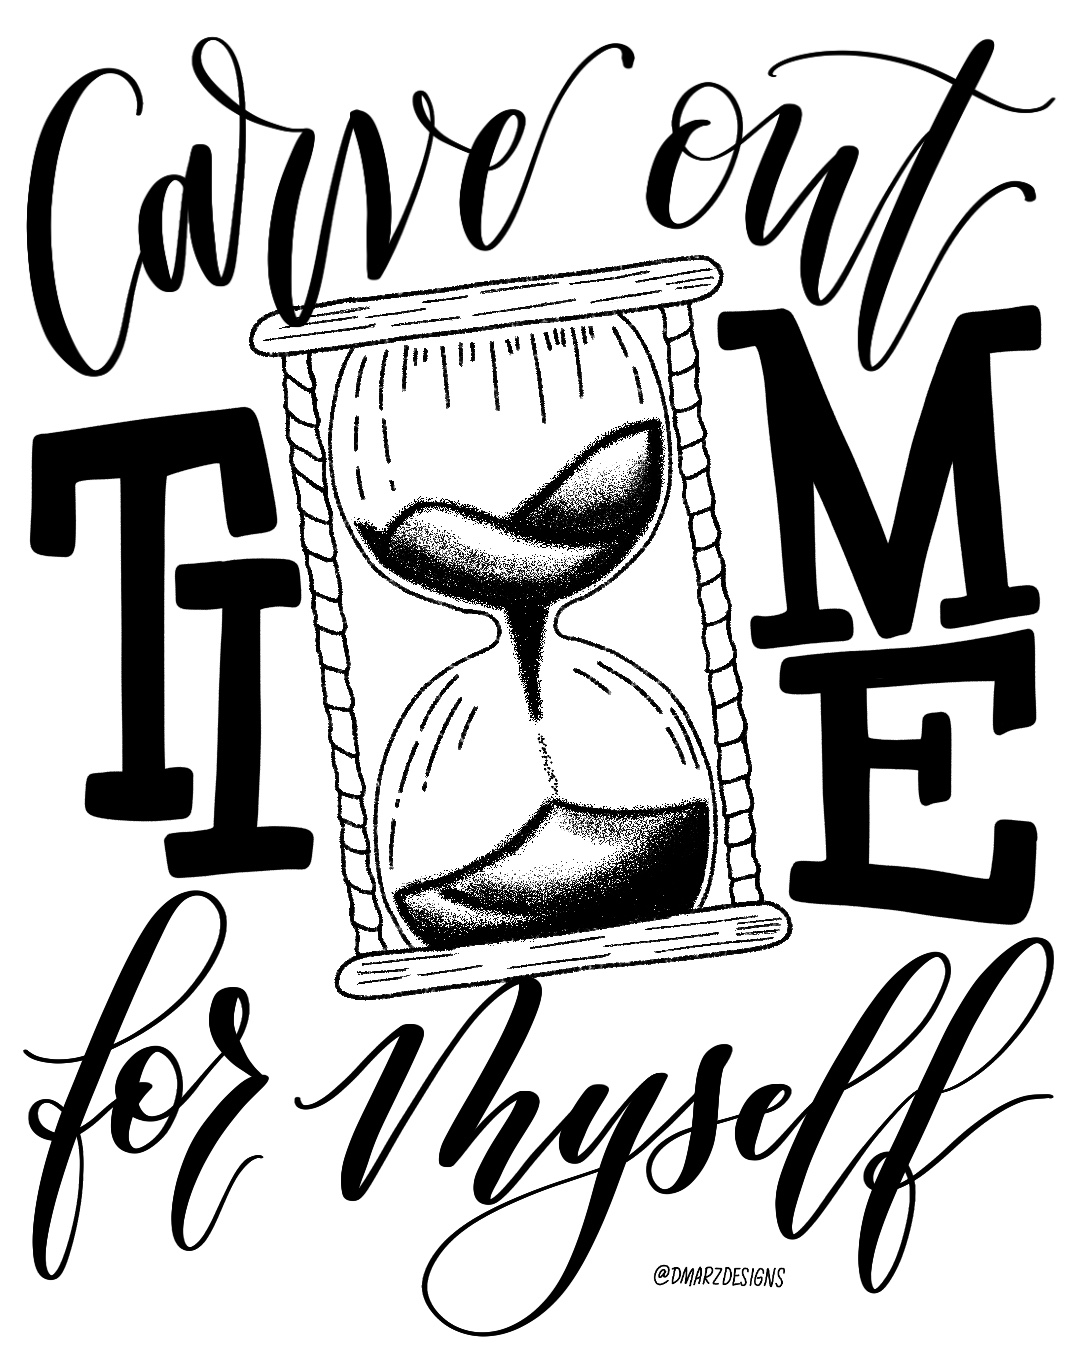 Carve Out Time For Myself - Version 2